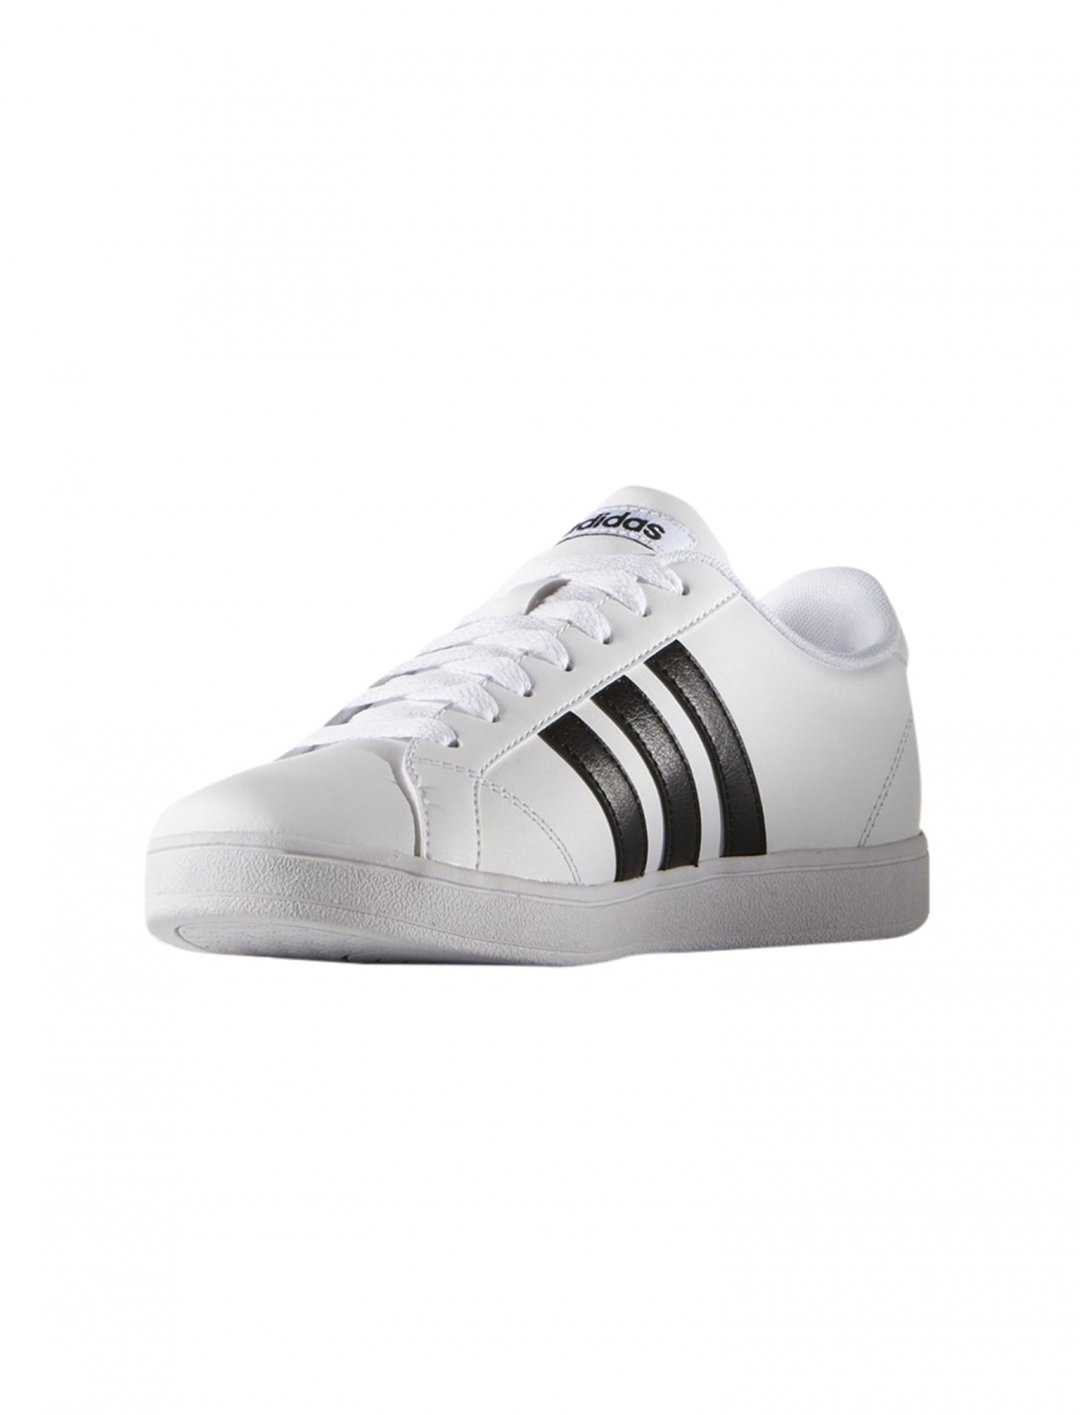 "Adidas Neo Baseline Sneaker {""id"":12,""product_section_id"":1,""name"":""Shoes"",""order"":12} Adidas"